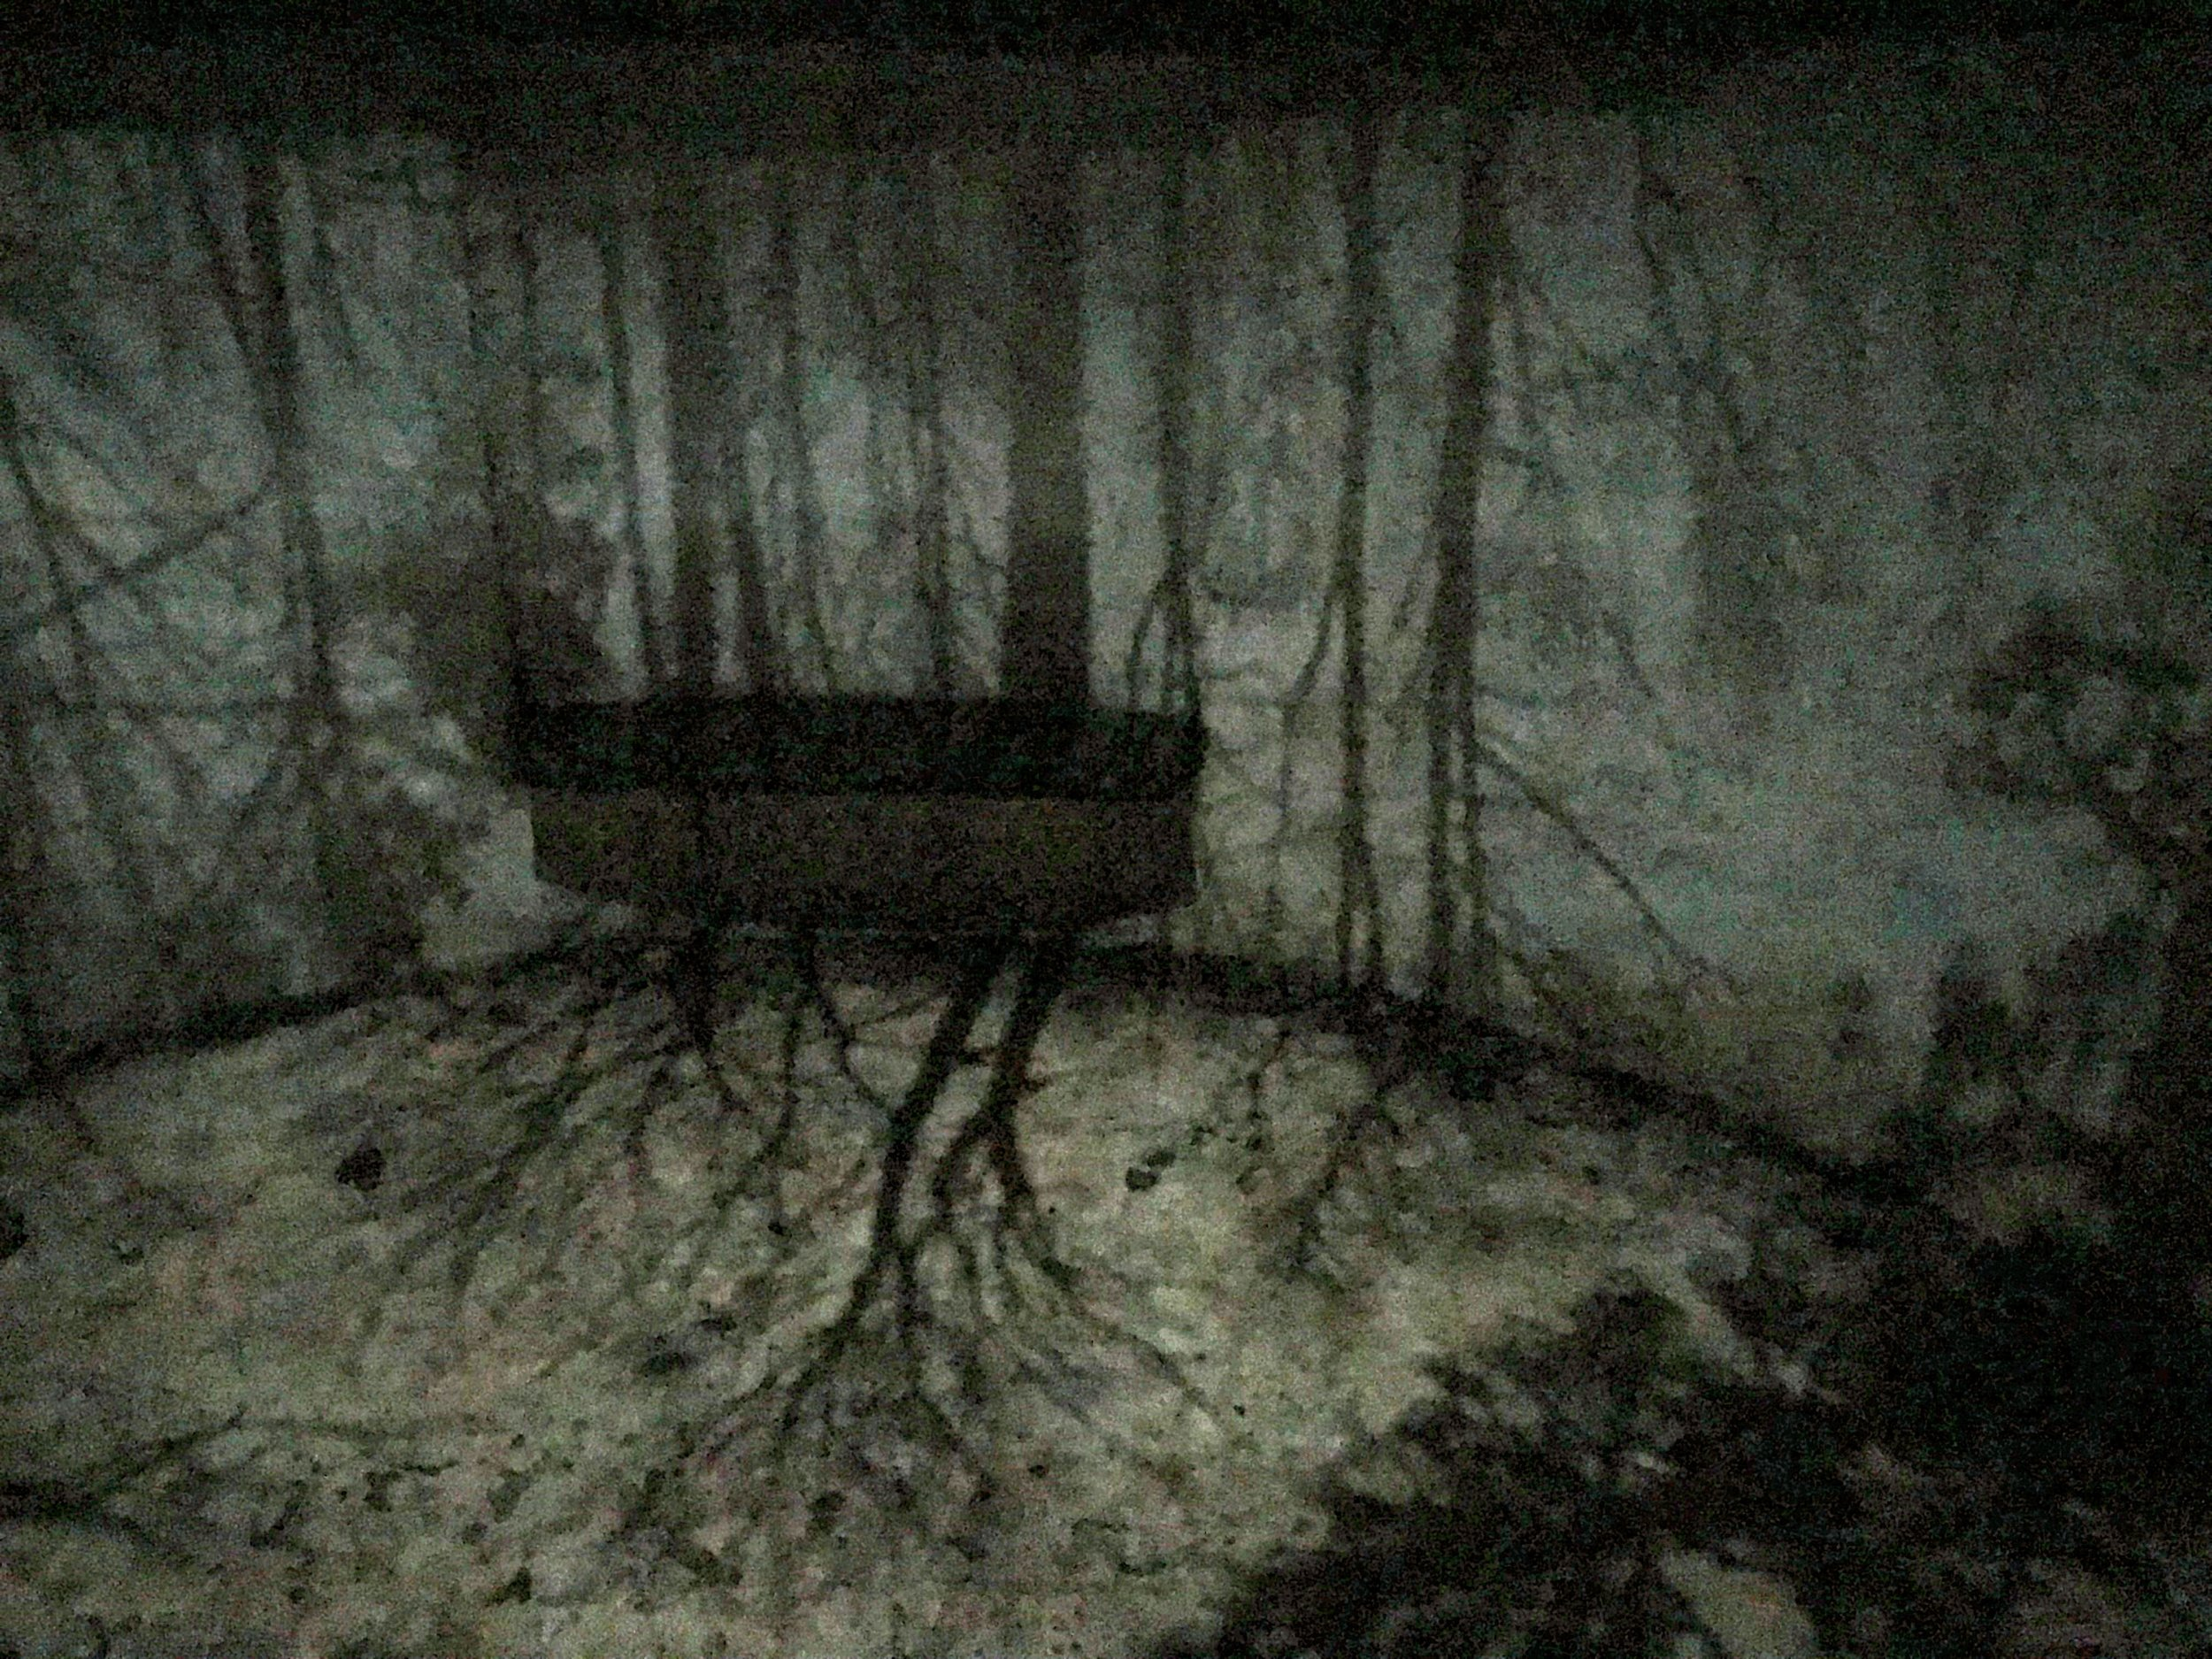 The camera projects an image of the trees on the walls around you.